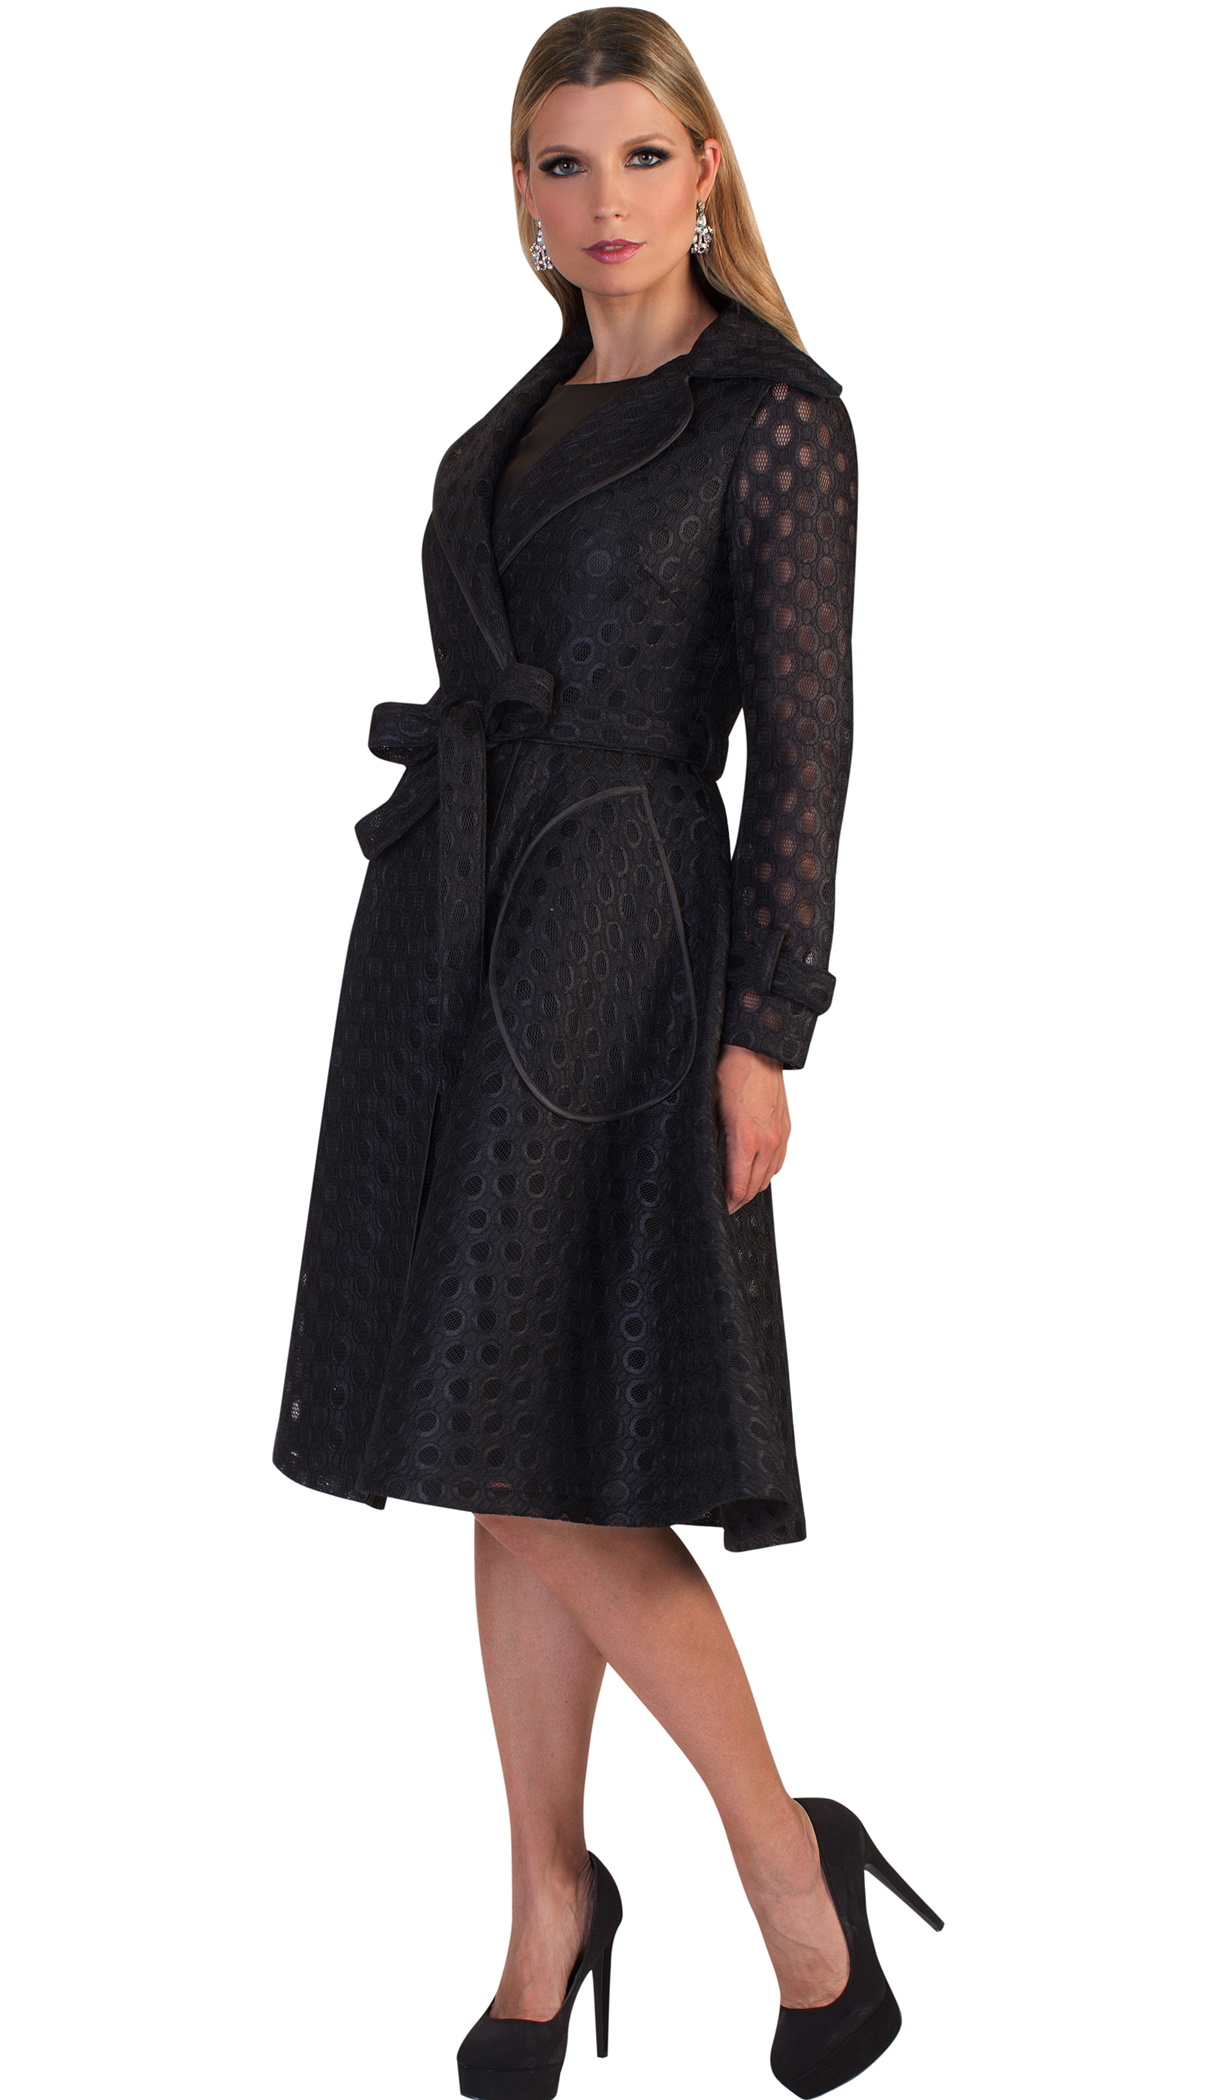 Tally Taylor Dress 4638-BLK